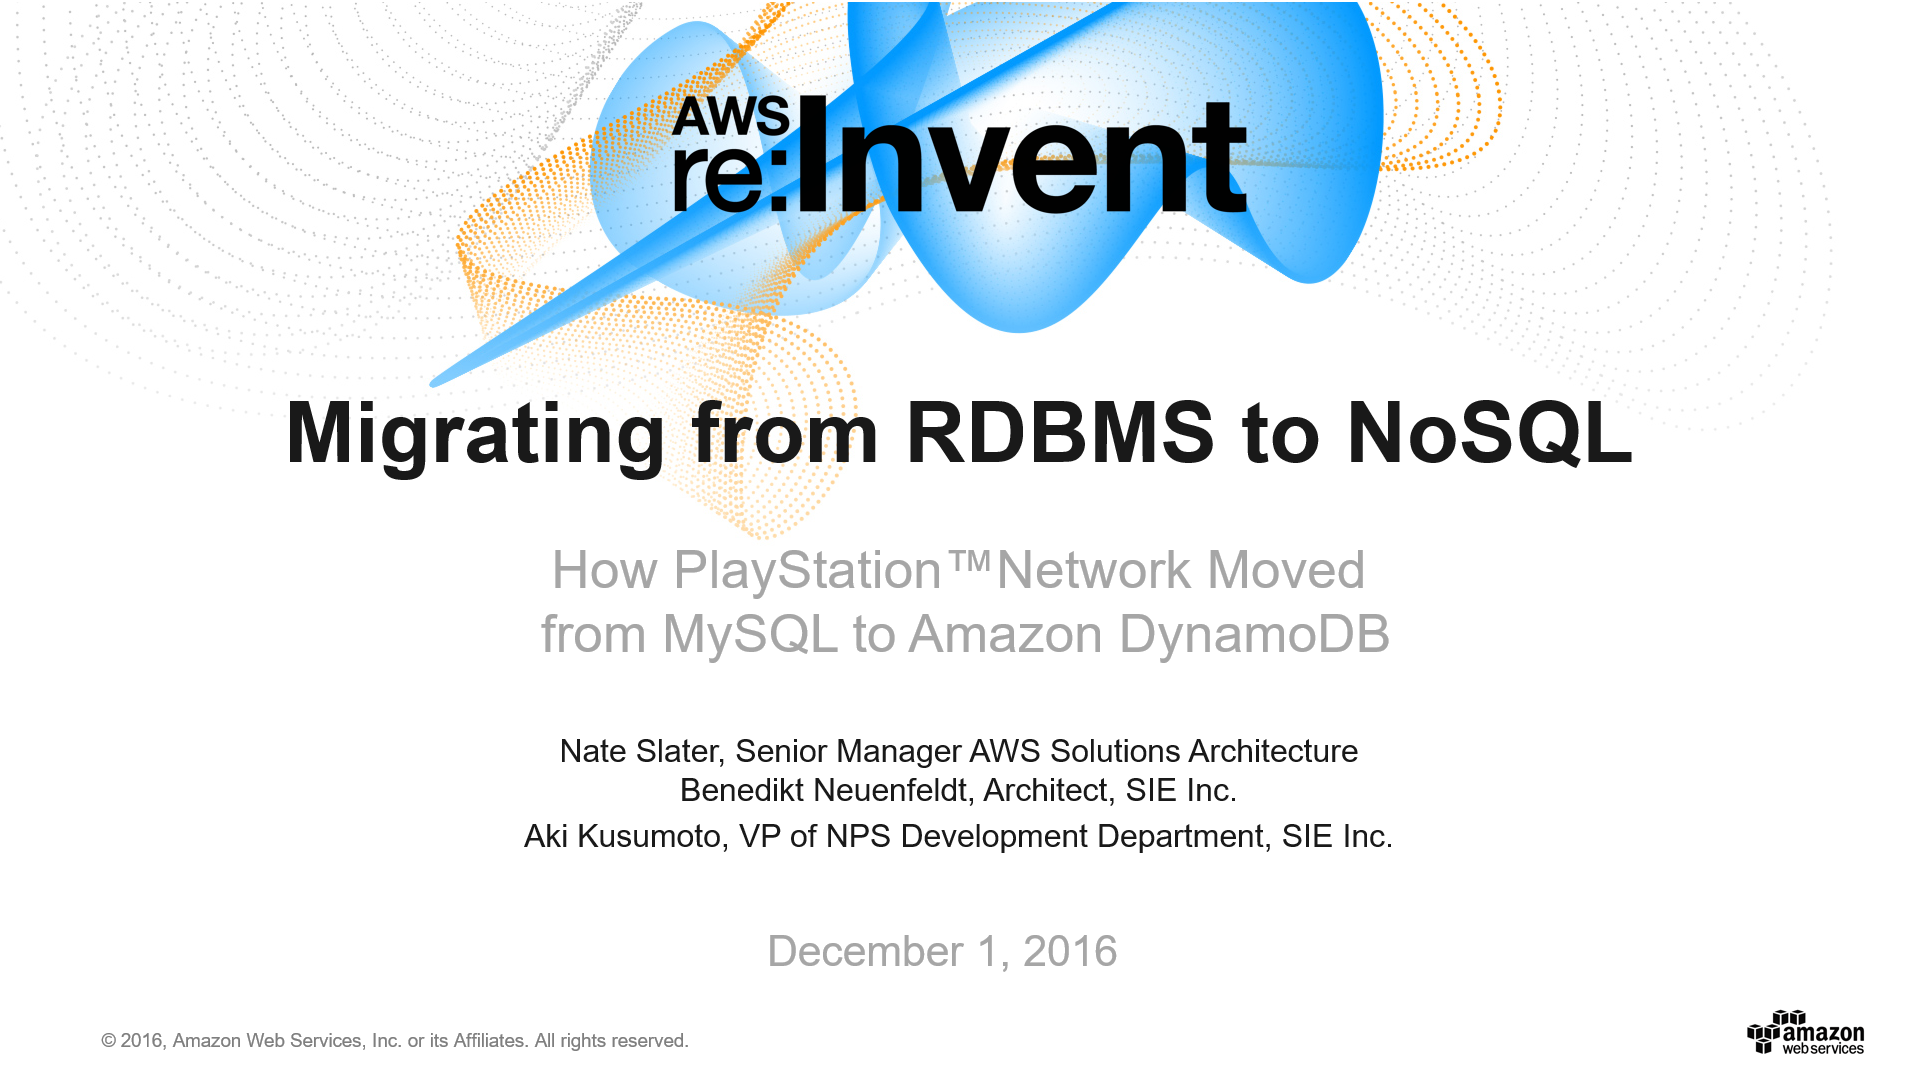 DAT318 Migrating from RDBMS to NoSQL How PlayStationTM Network Moved from MySQL to Amazon DynamoDB